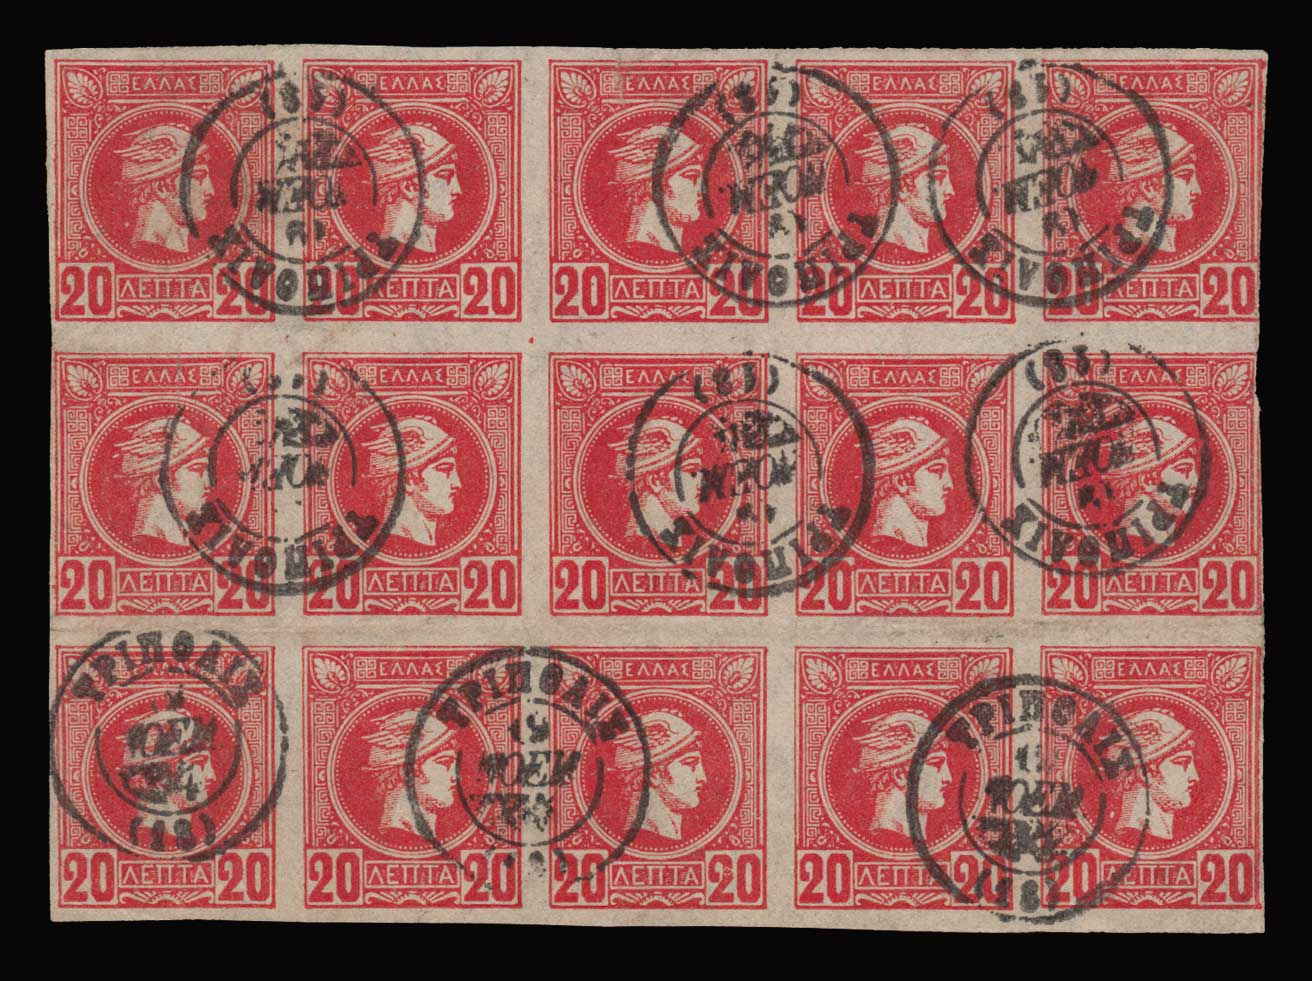 Lot 502 - -  SMALL HERMES HEAD ATHENSPRINTING - 2nd PERIOD -  Athens Auctions Public Auction 87 General Stamp Sale